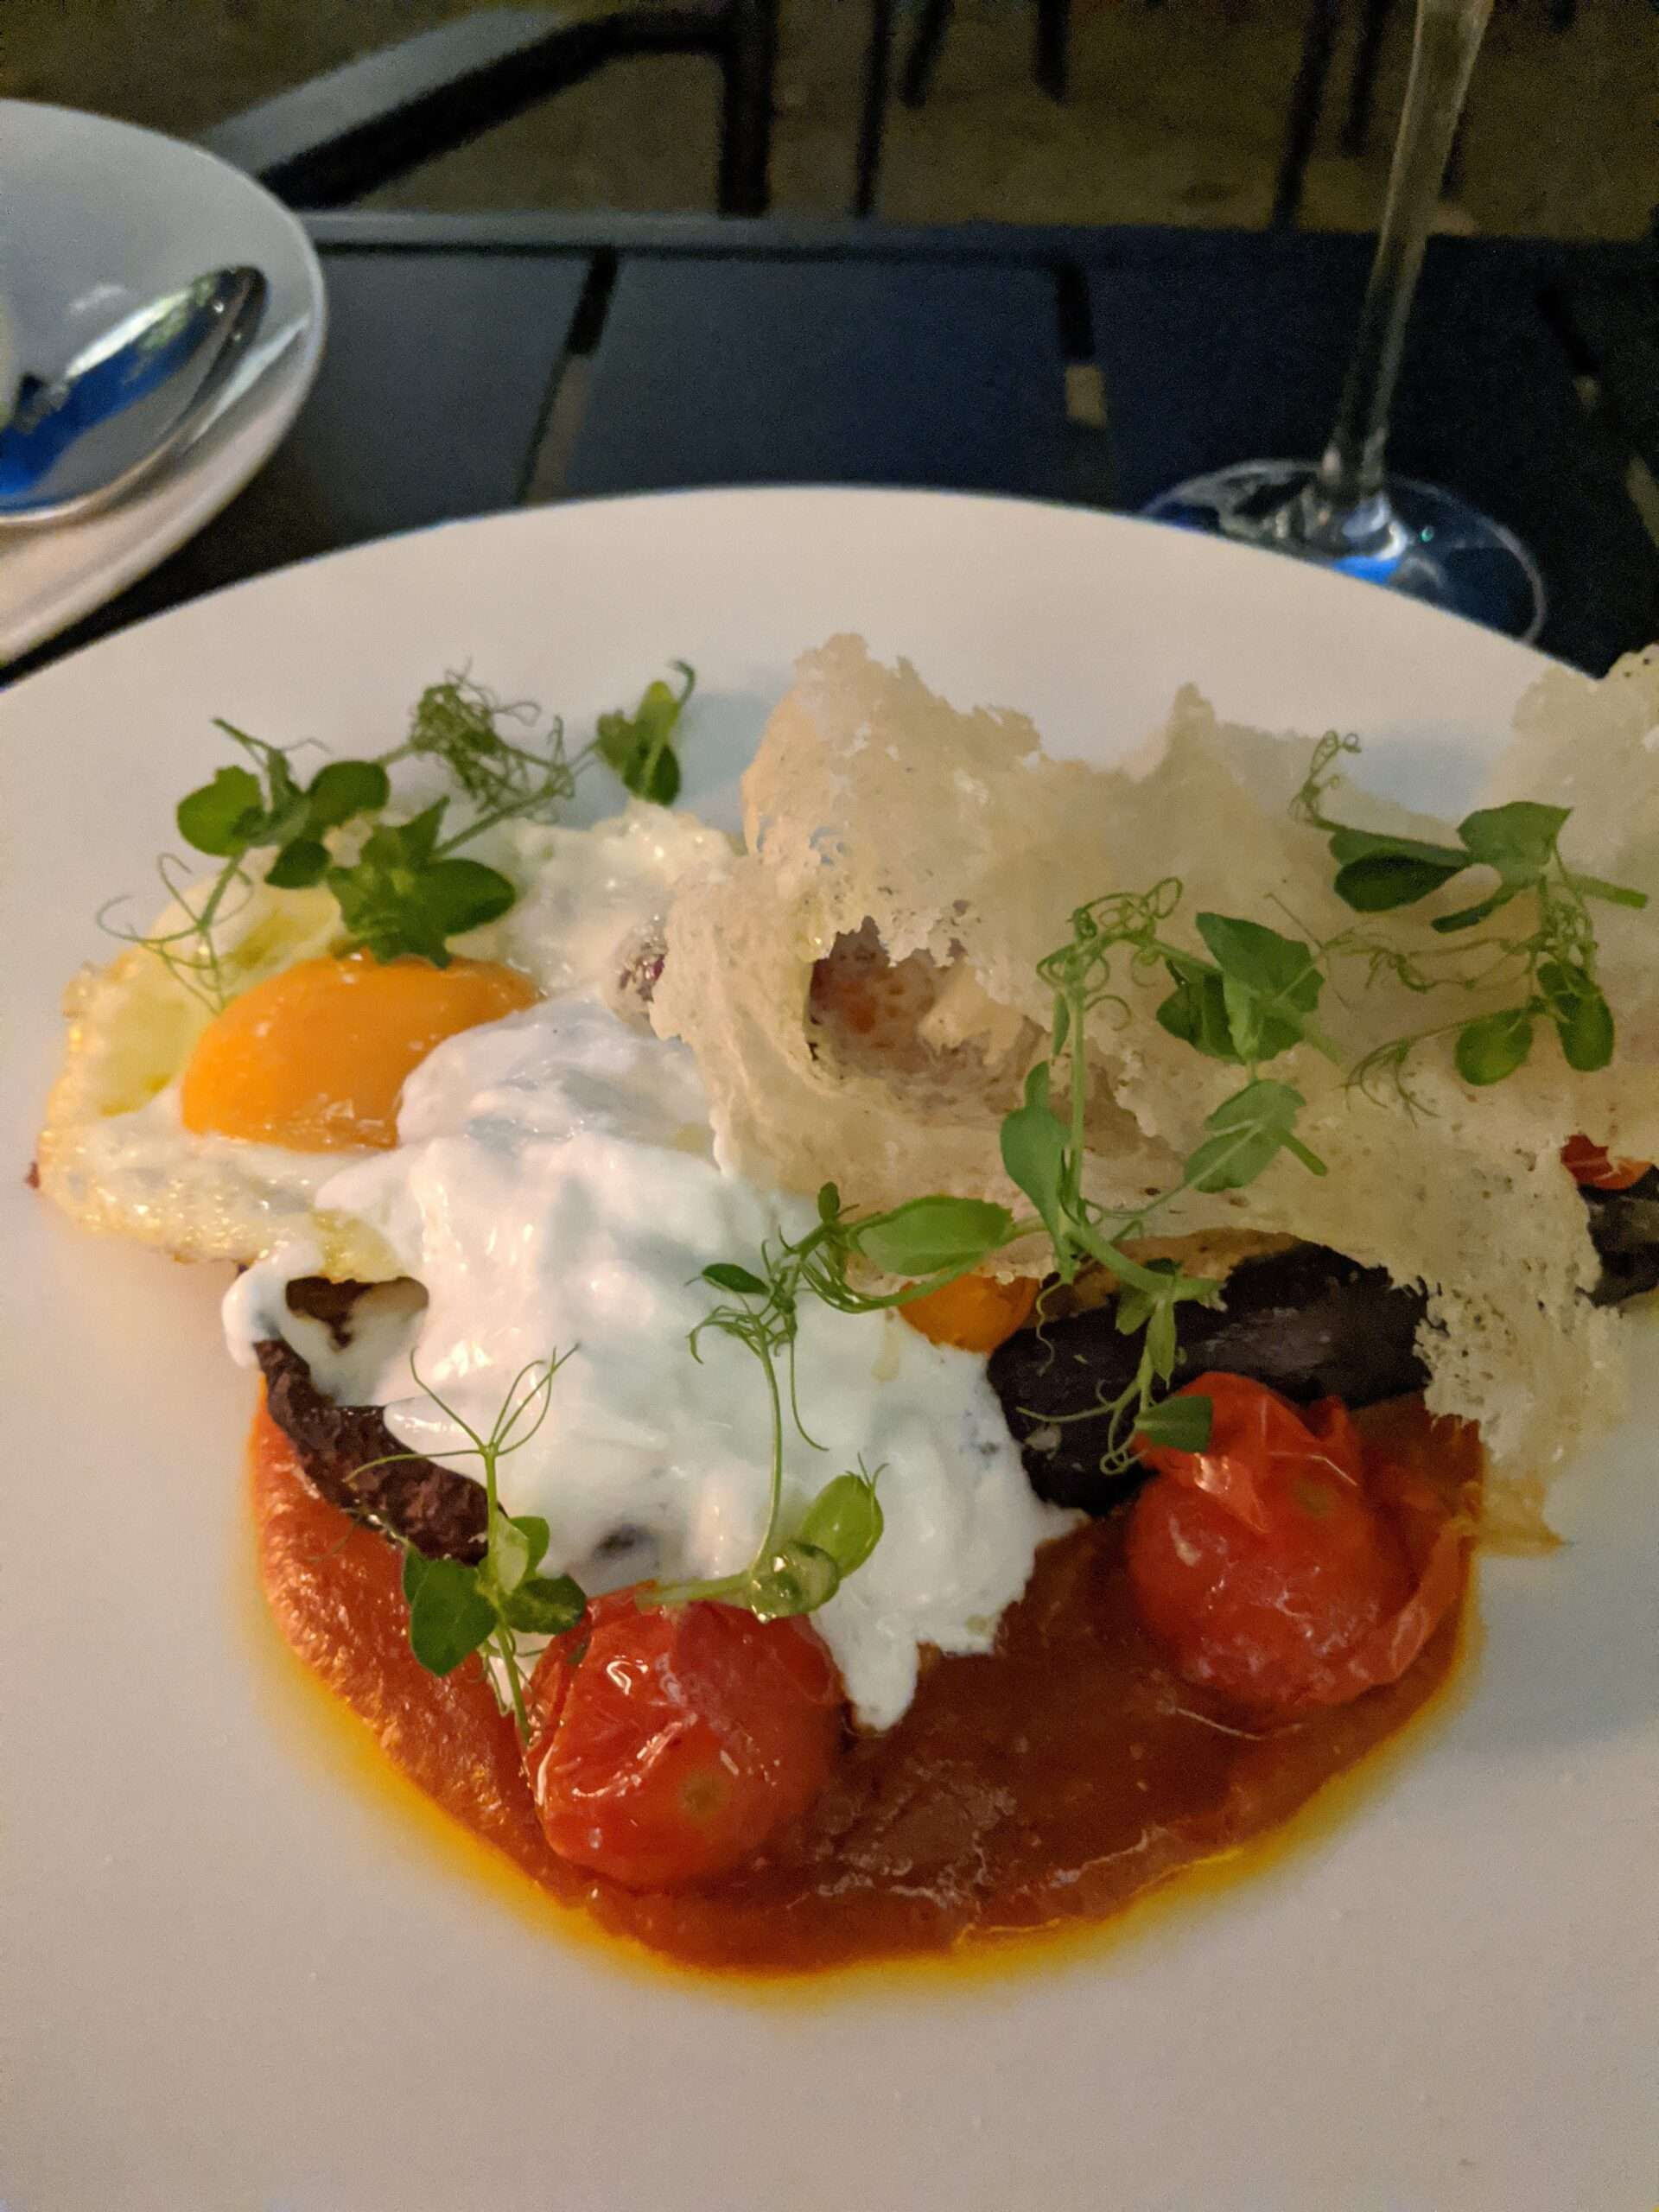 main course at Kazerne, of the the best places to eat in Eindhoven, with tomato sauce, aubergine parmigiana, and delicately fried cheese